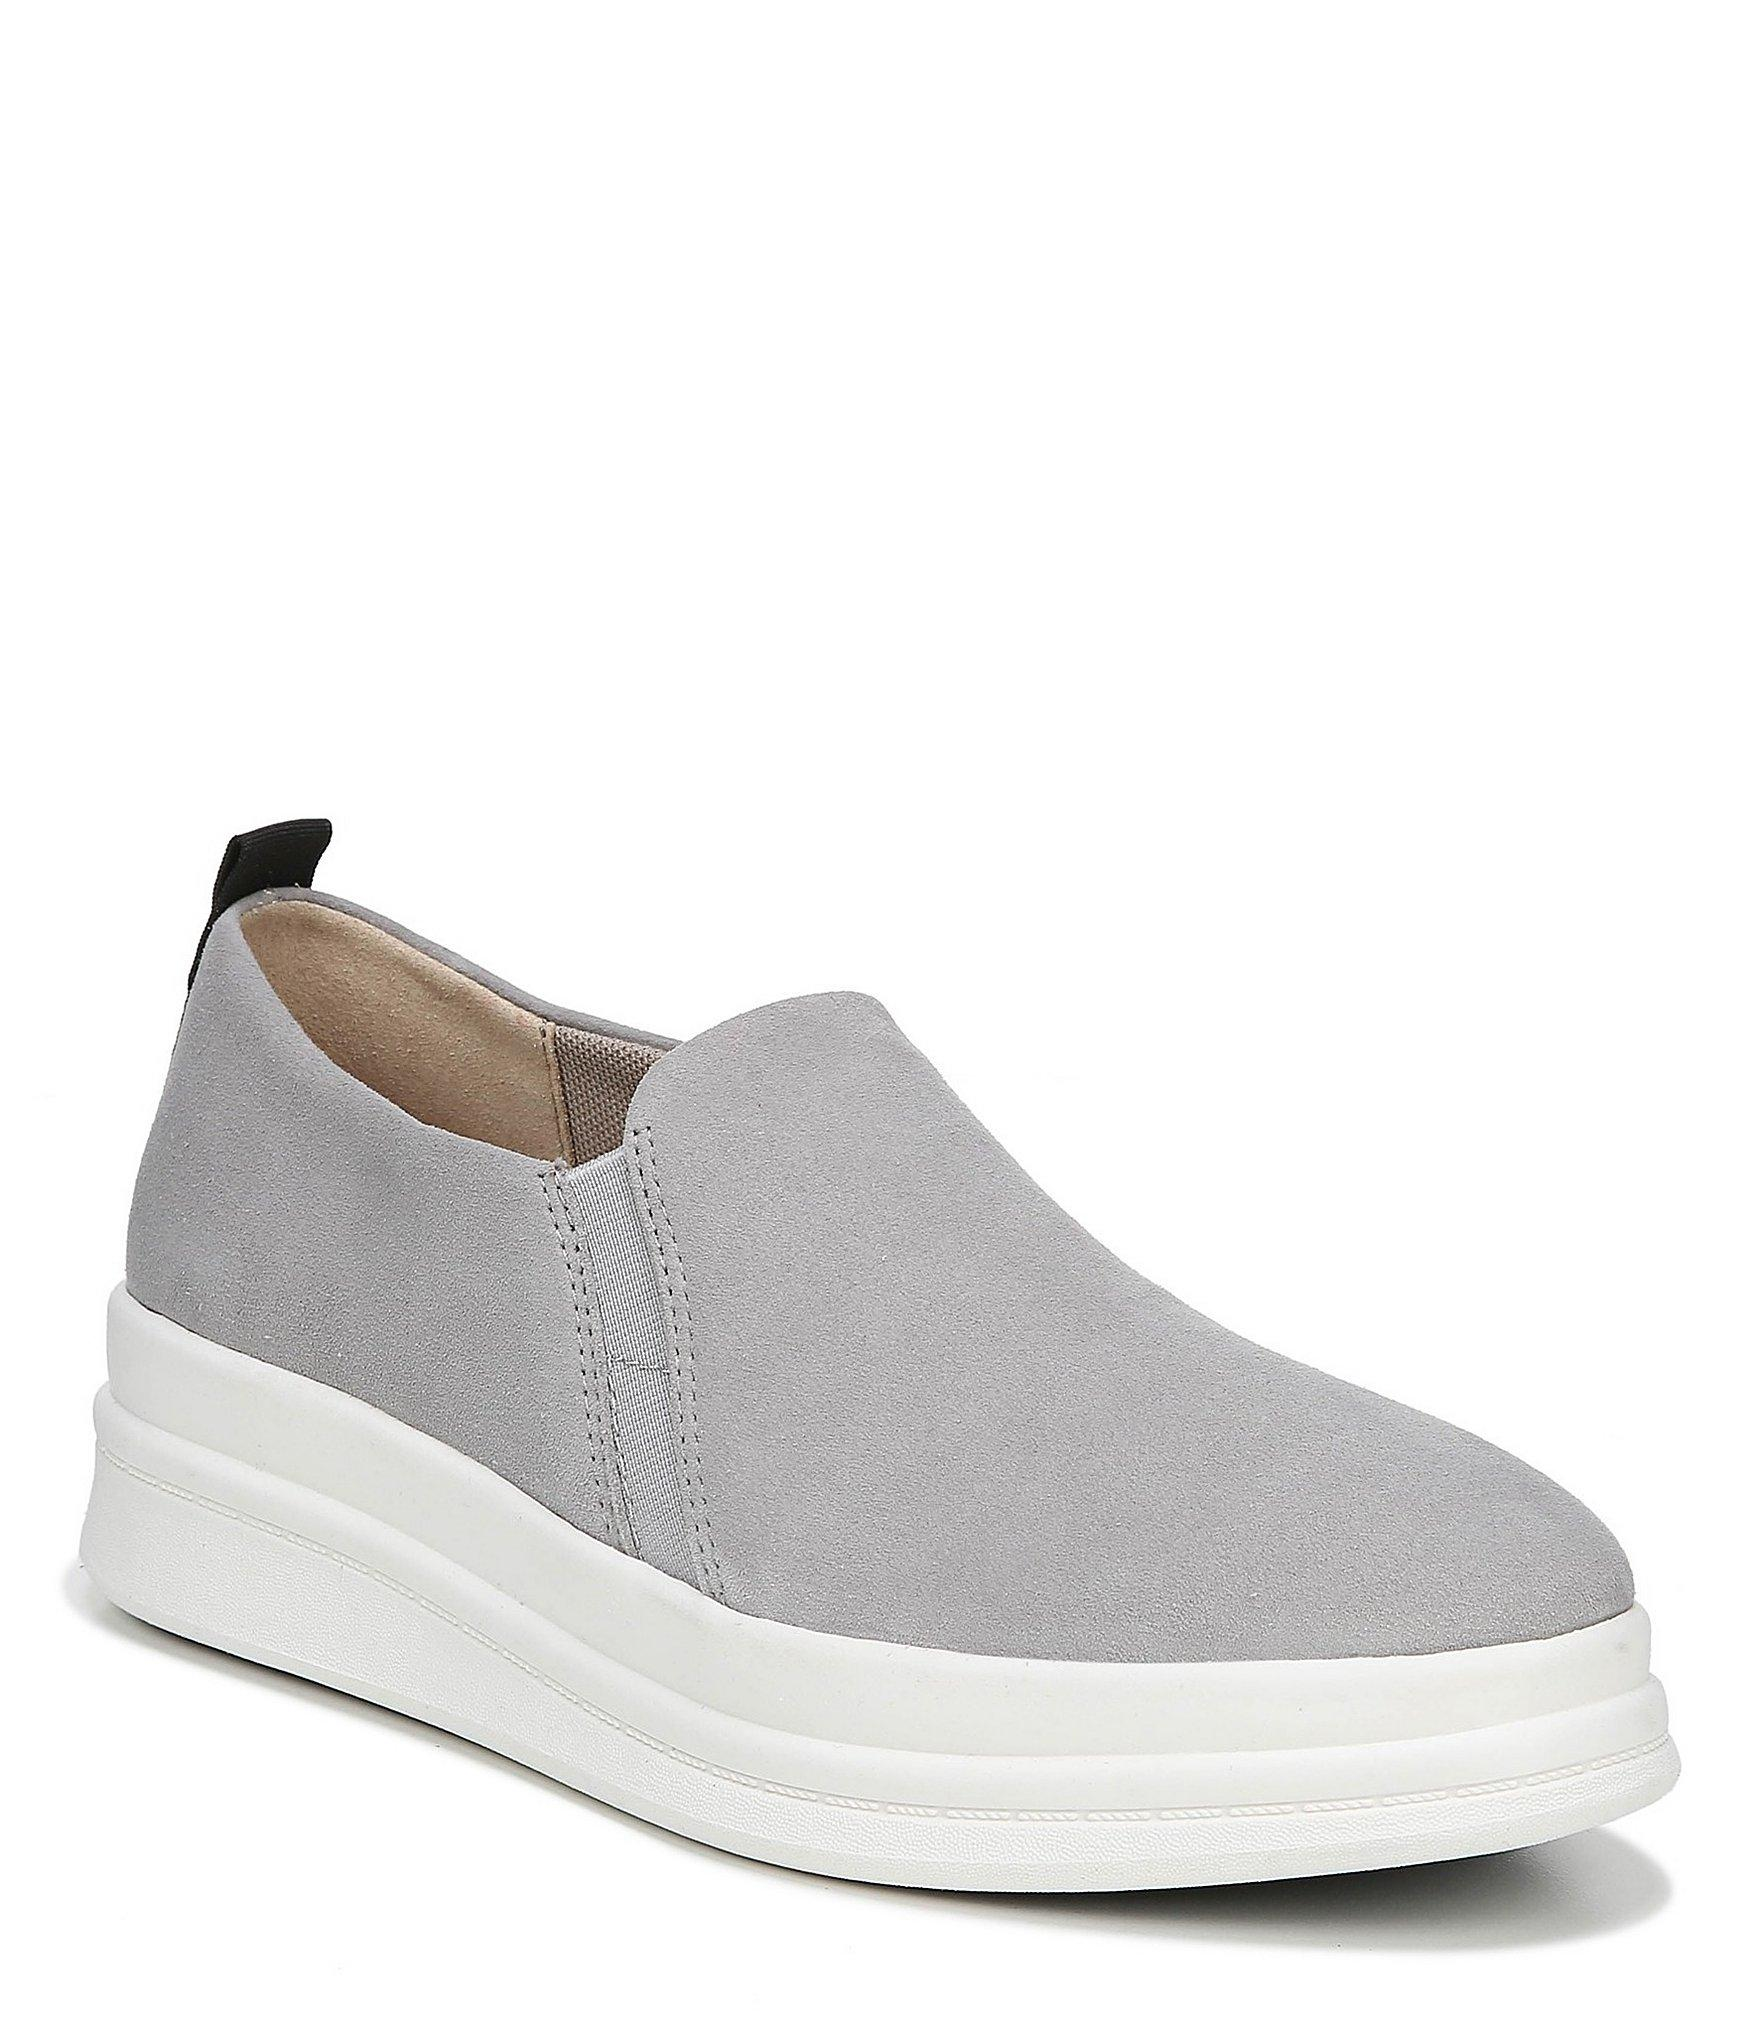 4728e3a21ce Lyst - Naturalizer Yola Suede Slip On Sneakers in Gray